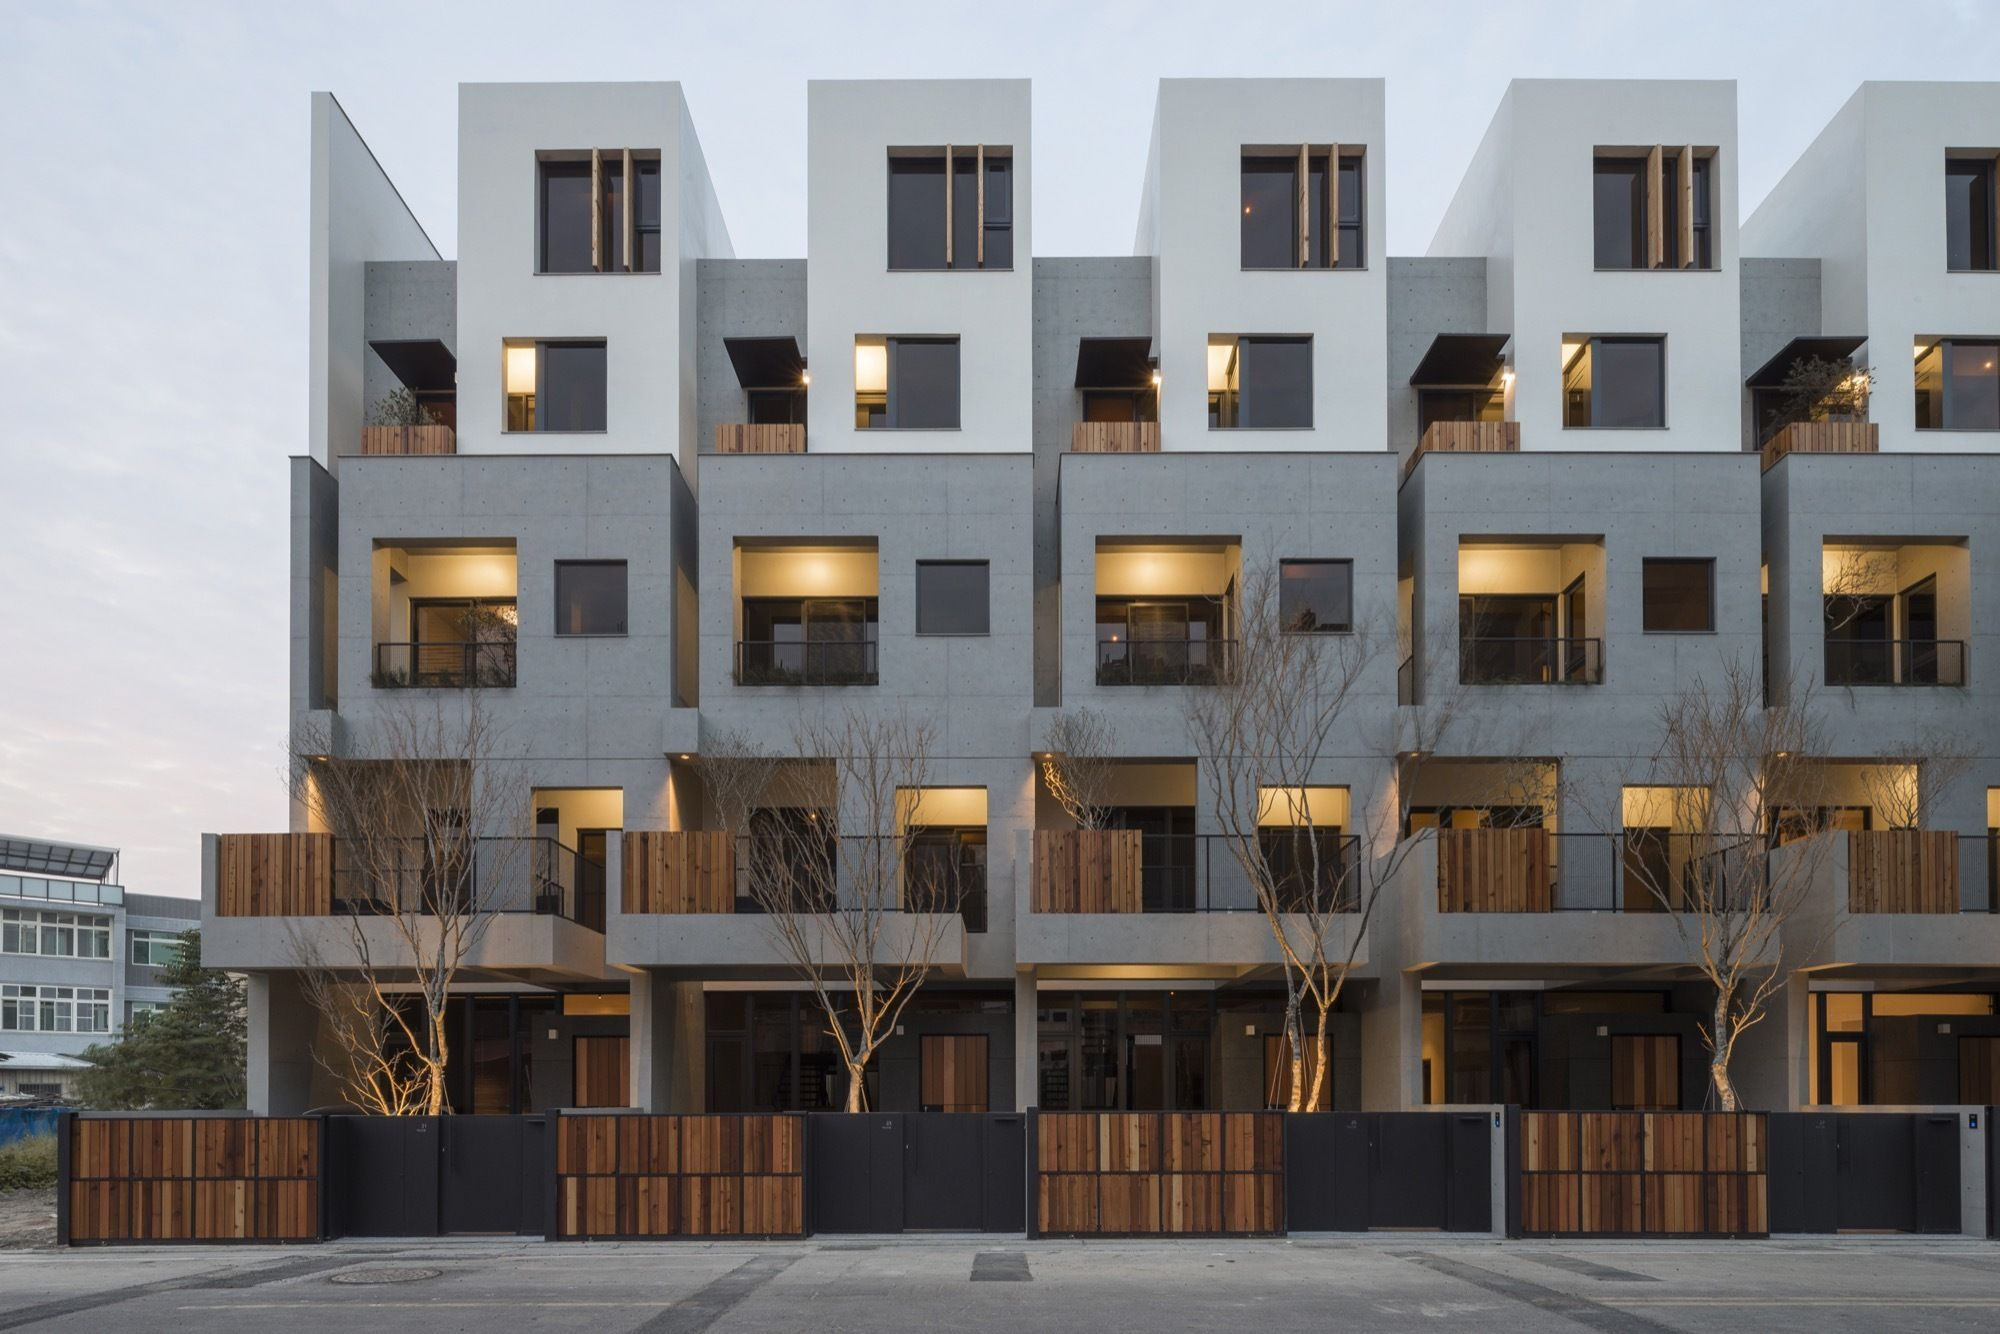 Shen Ting Tseng architects is part of Architecture house - Completed in 2016 in Hsinchu County, Taiwan  Images by Lucas K  Doolan  LightHouse is located in Hsinchu County, Taiwan  This multistoried residential building block is designed in consideration of common Taiwanese